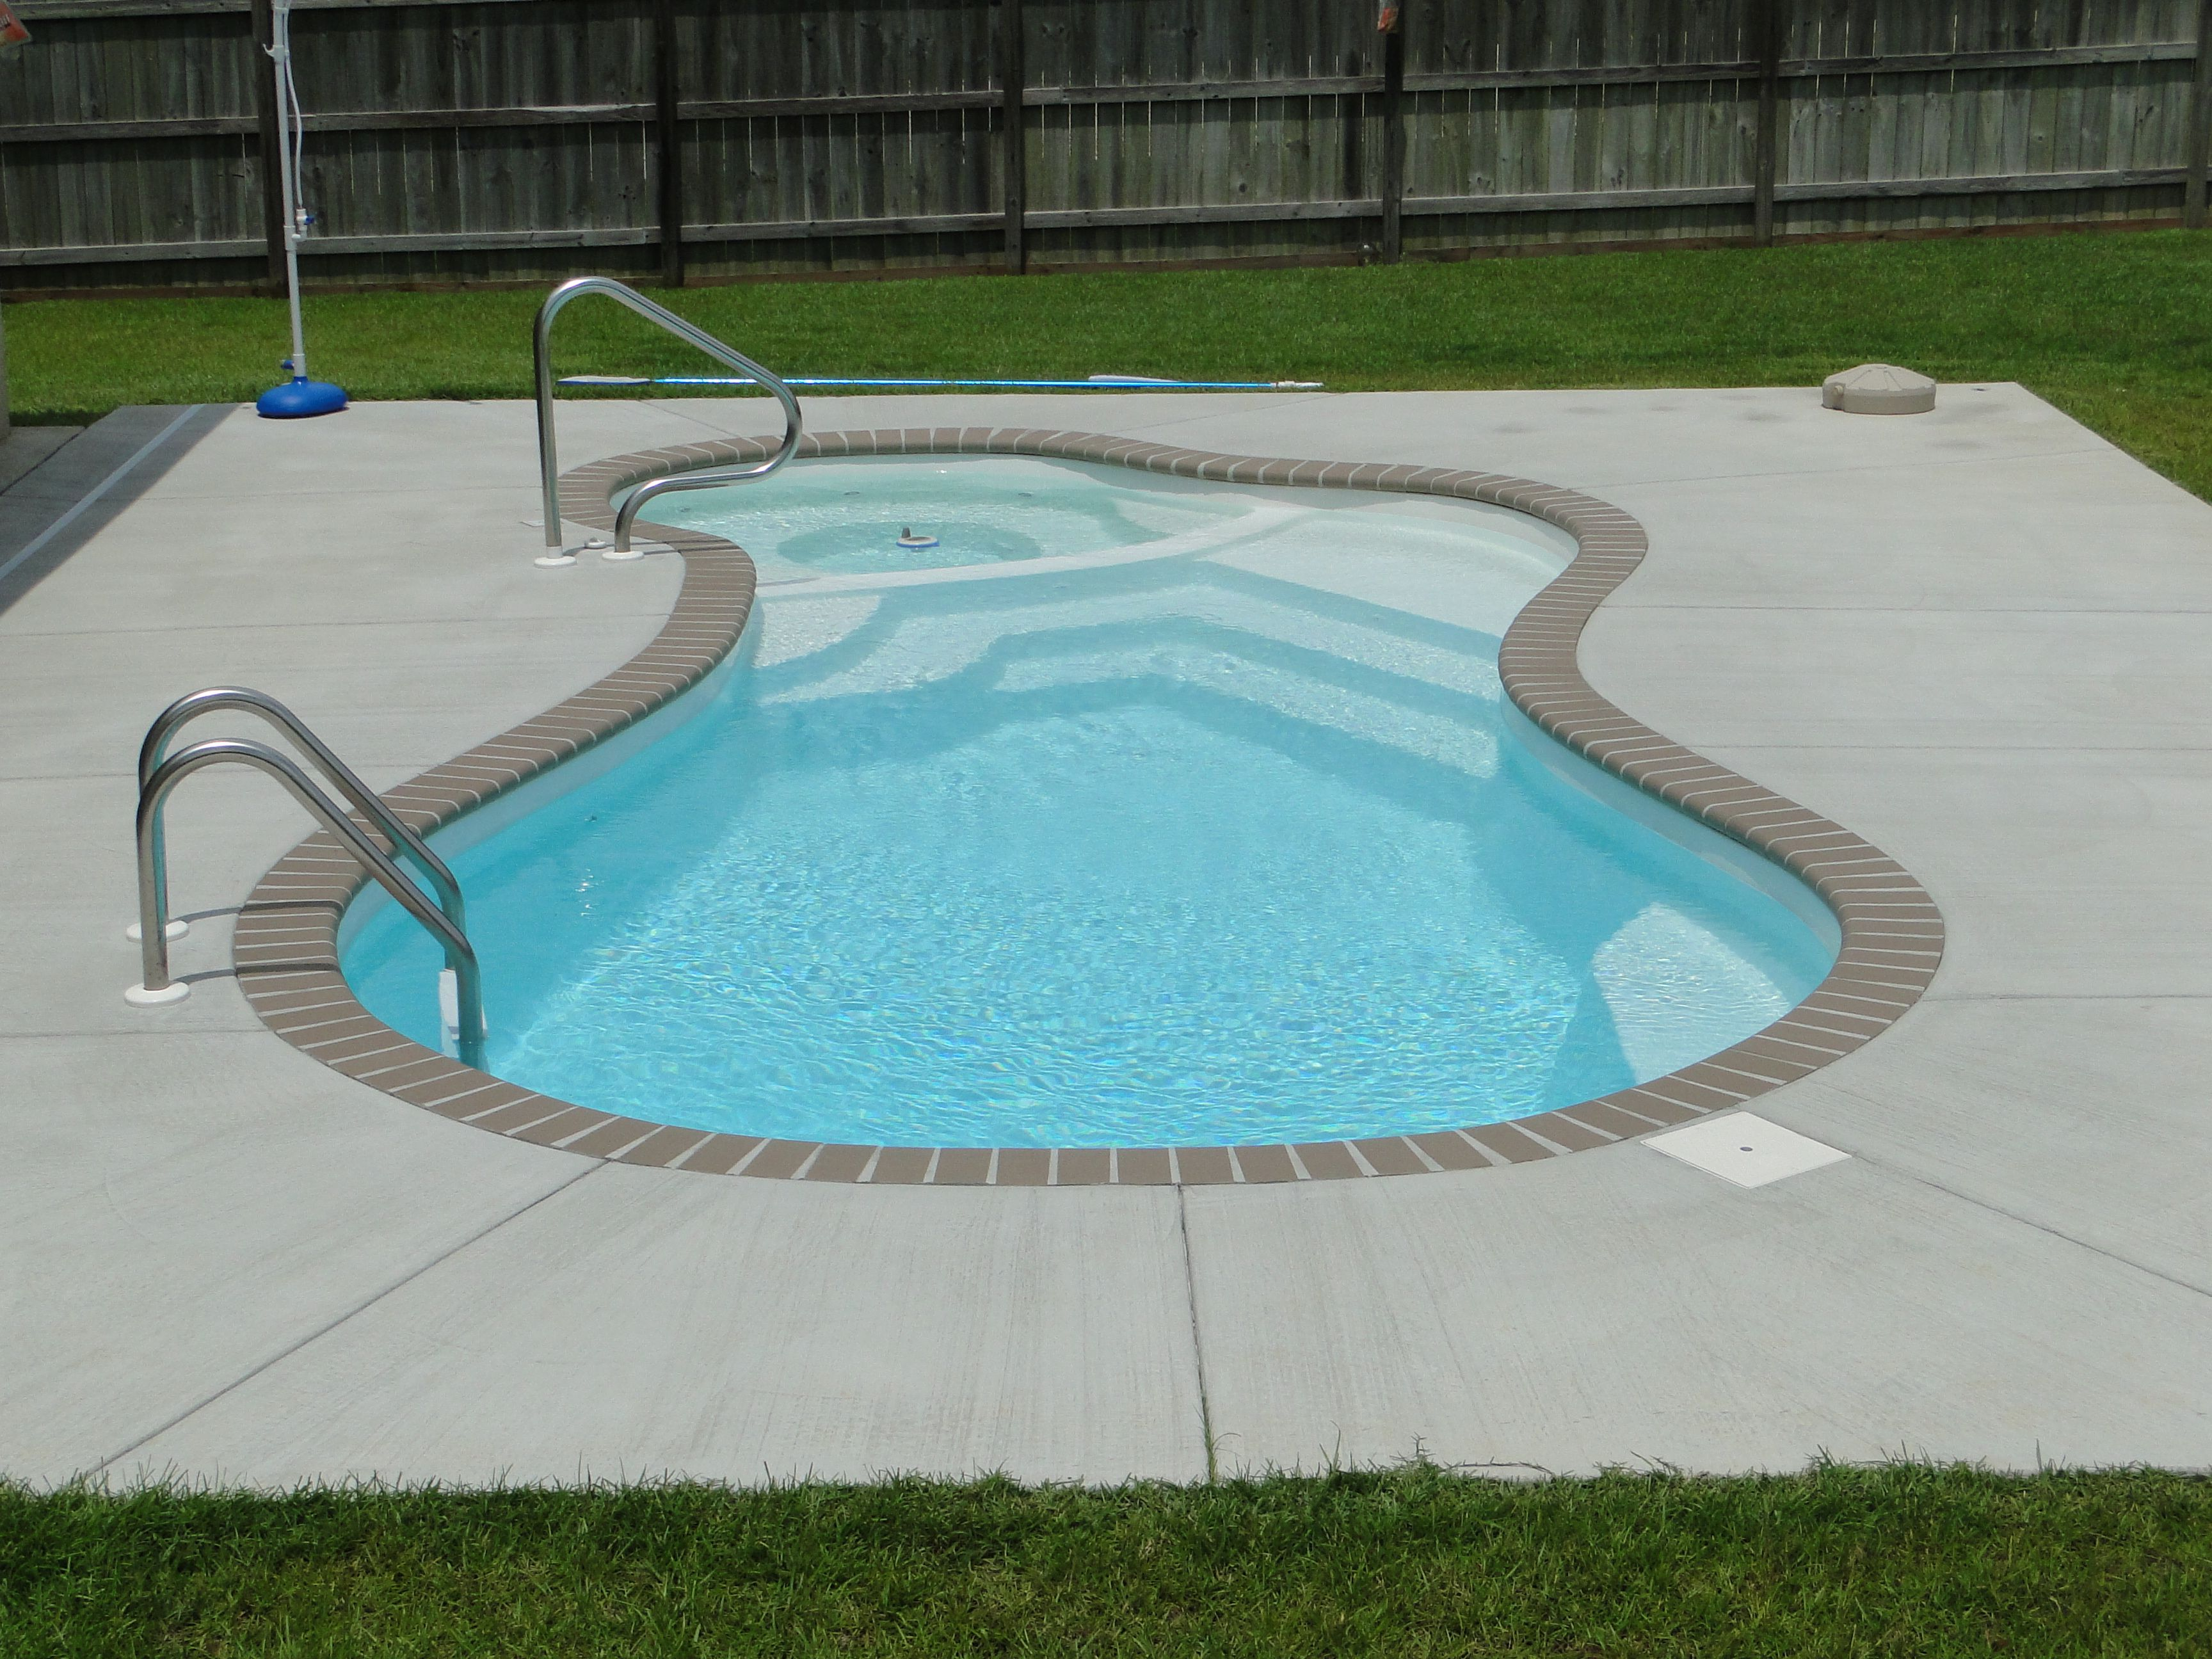 Swimming Pool Designs And Prices swimming pool prices and quotes in cape town Backyard Swimming Pool With Jacuzzi Fiberglass Pools Vaughns Pools Pensicola Fl